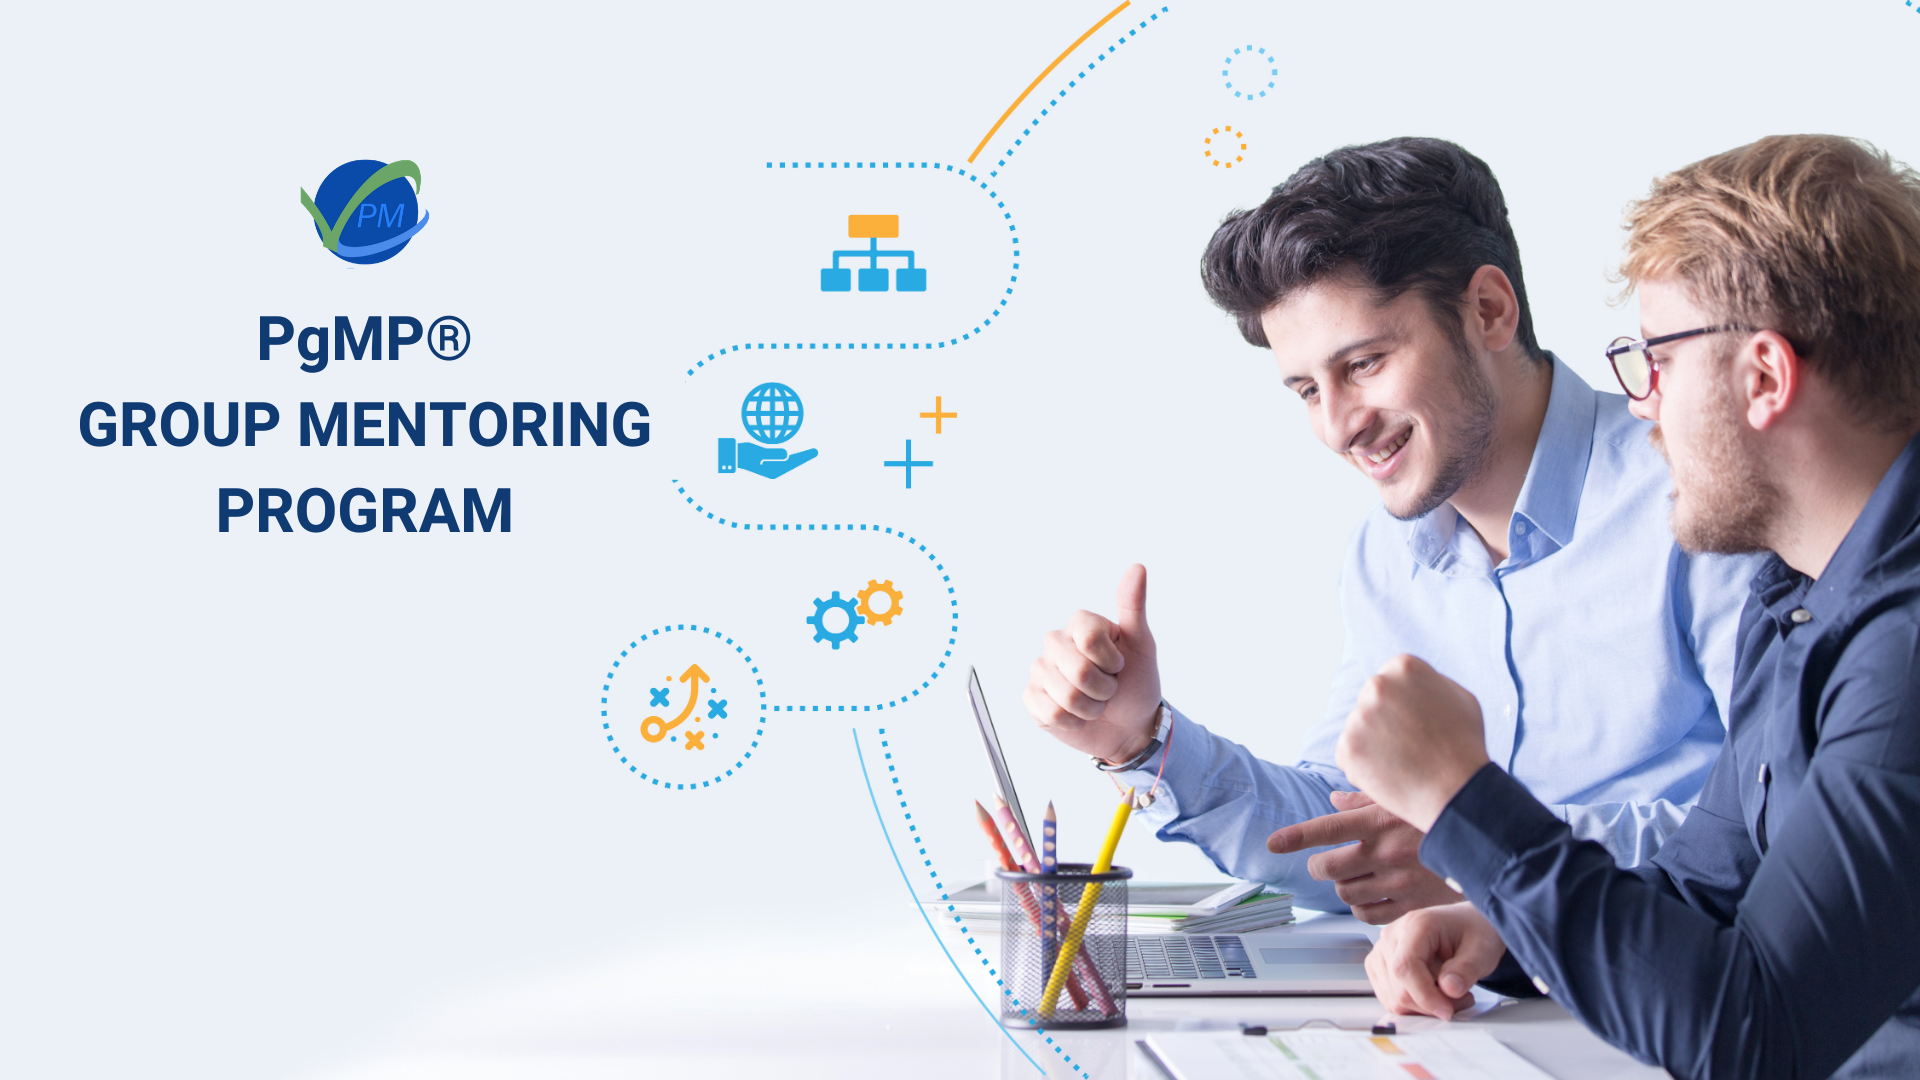 PgMP® Group Mentoring Program, May 02, 2021, 6 - 8 PM (USA PDT) / 8 - 10 PM (USA CDT) / May 03, 2021, 9 - 11 AM (SGT / MYT) / 11 AM - 1 PM (AEST)